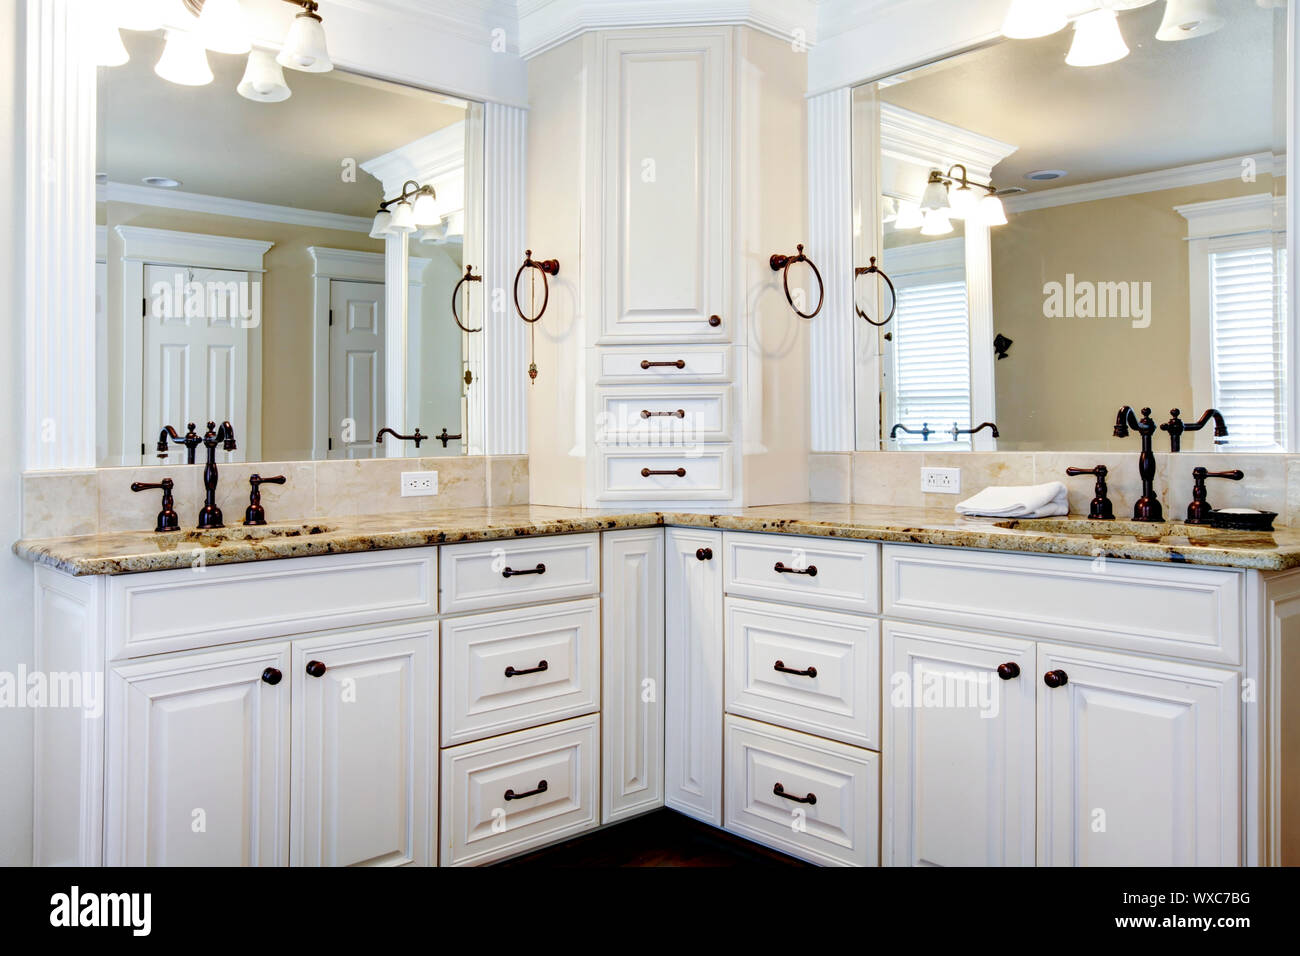 Large Corner Window Shower High Resolution Stock Photography And Images Alamy